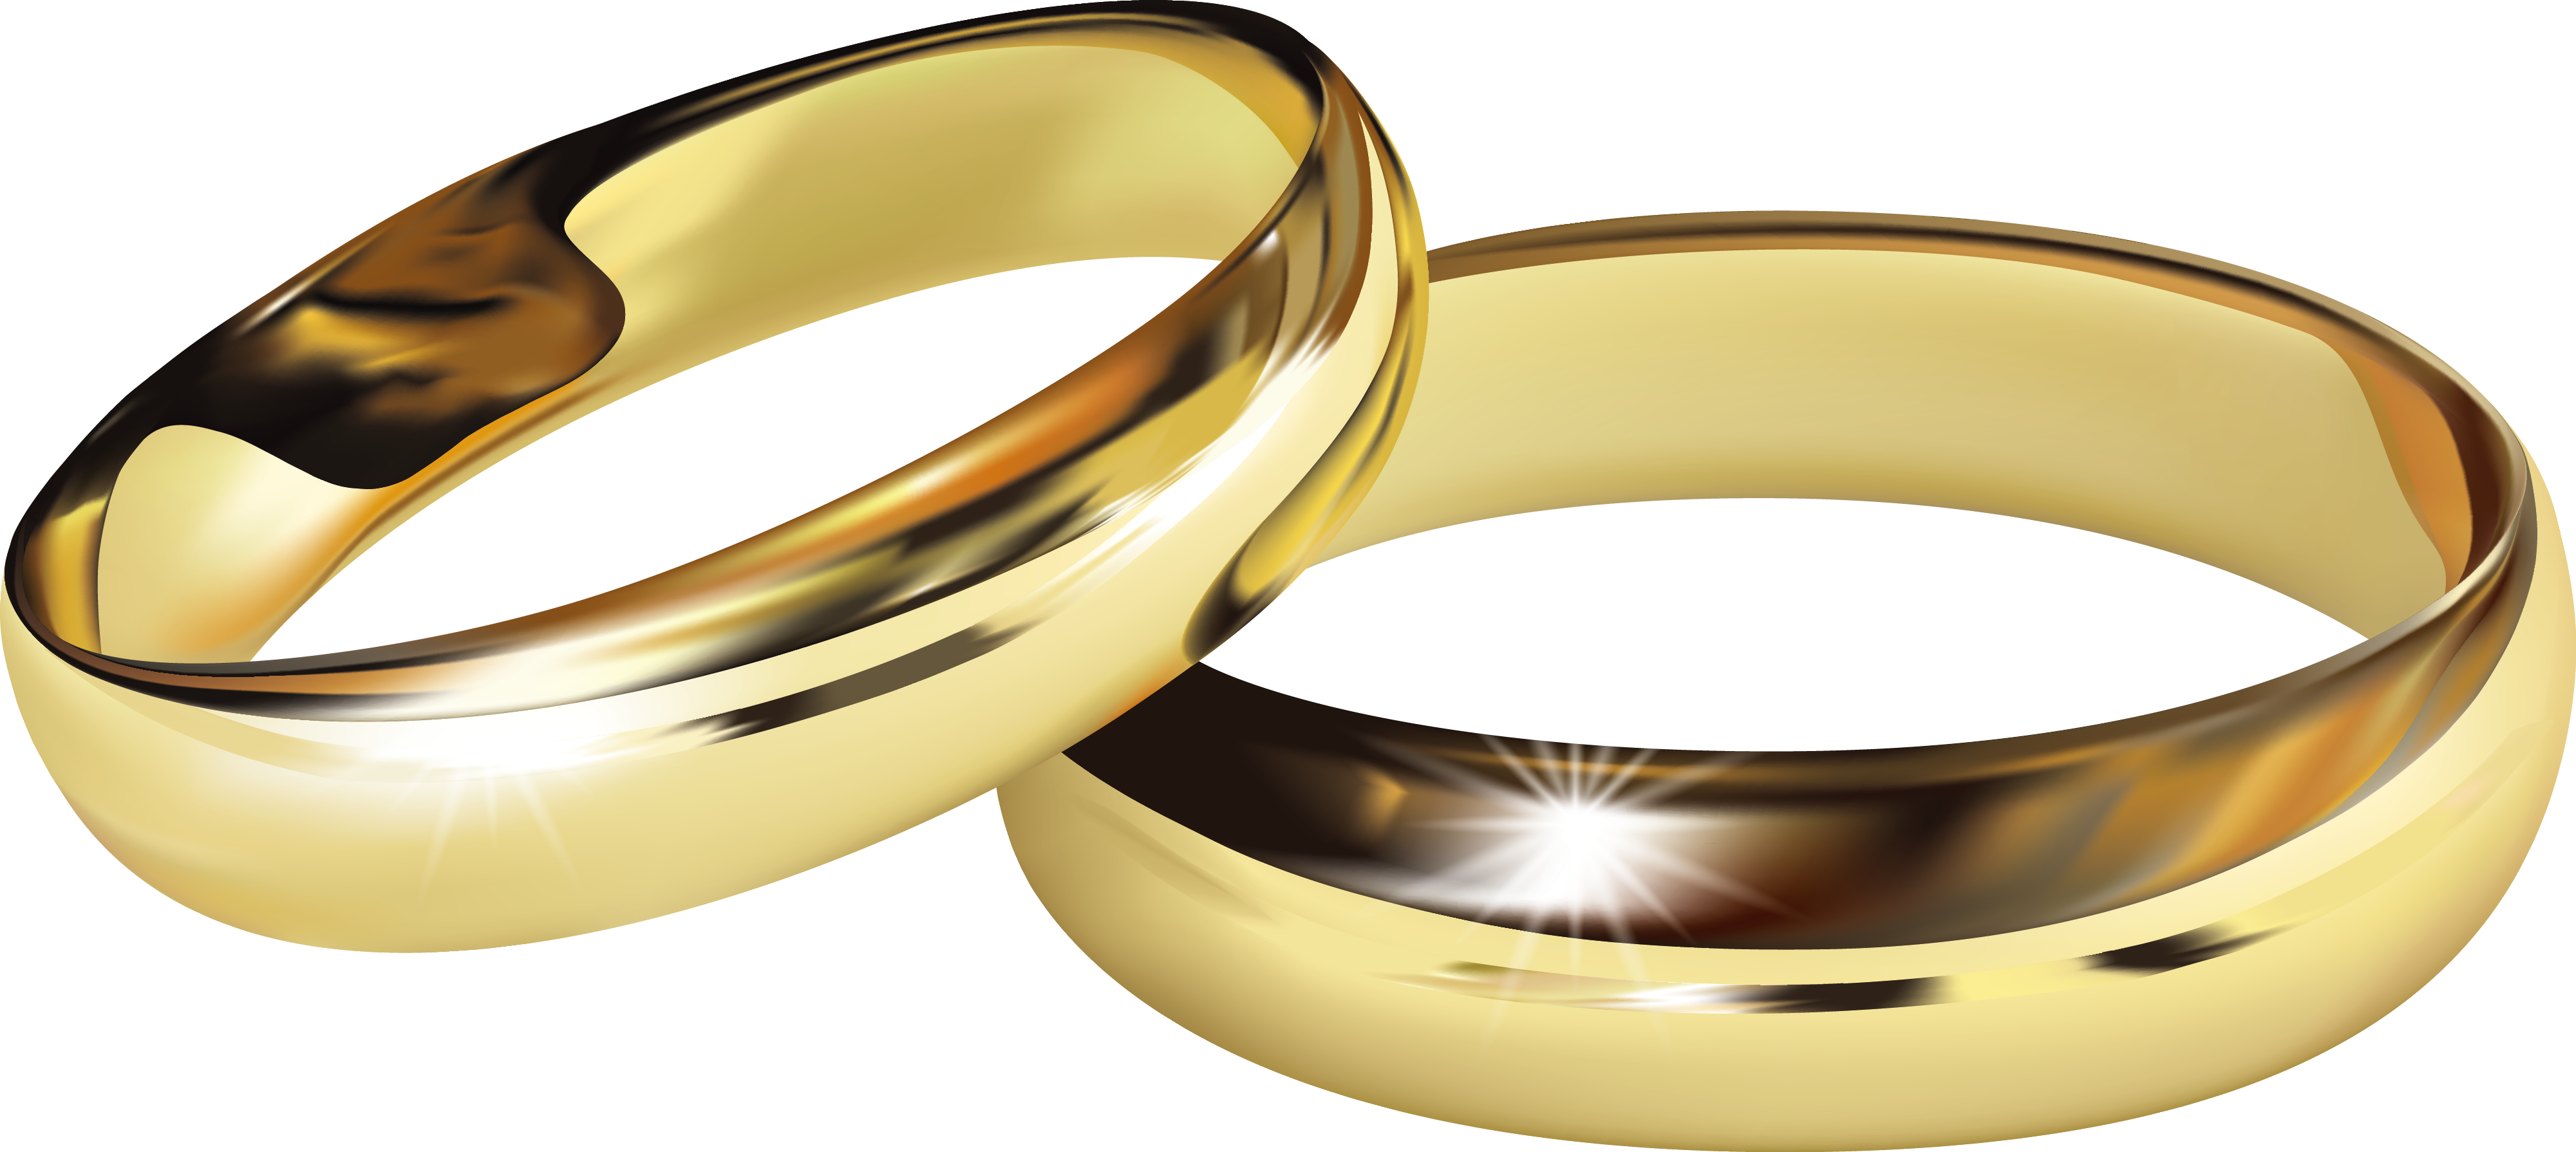 Wedding Ring Png Clipart Jewelry Ring Png Images Free Download Free Transparent Png Logos